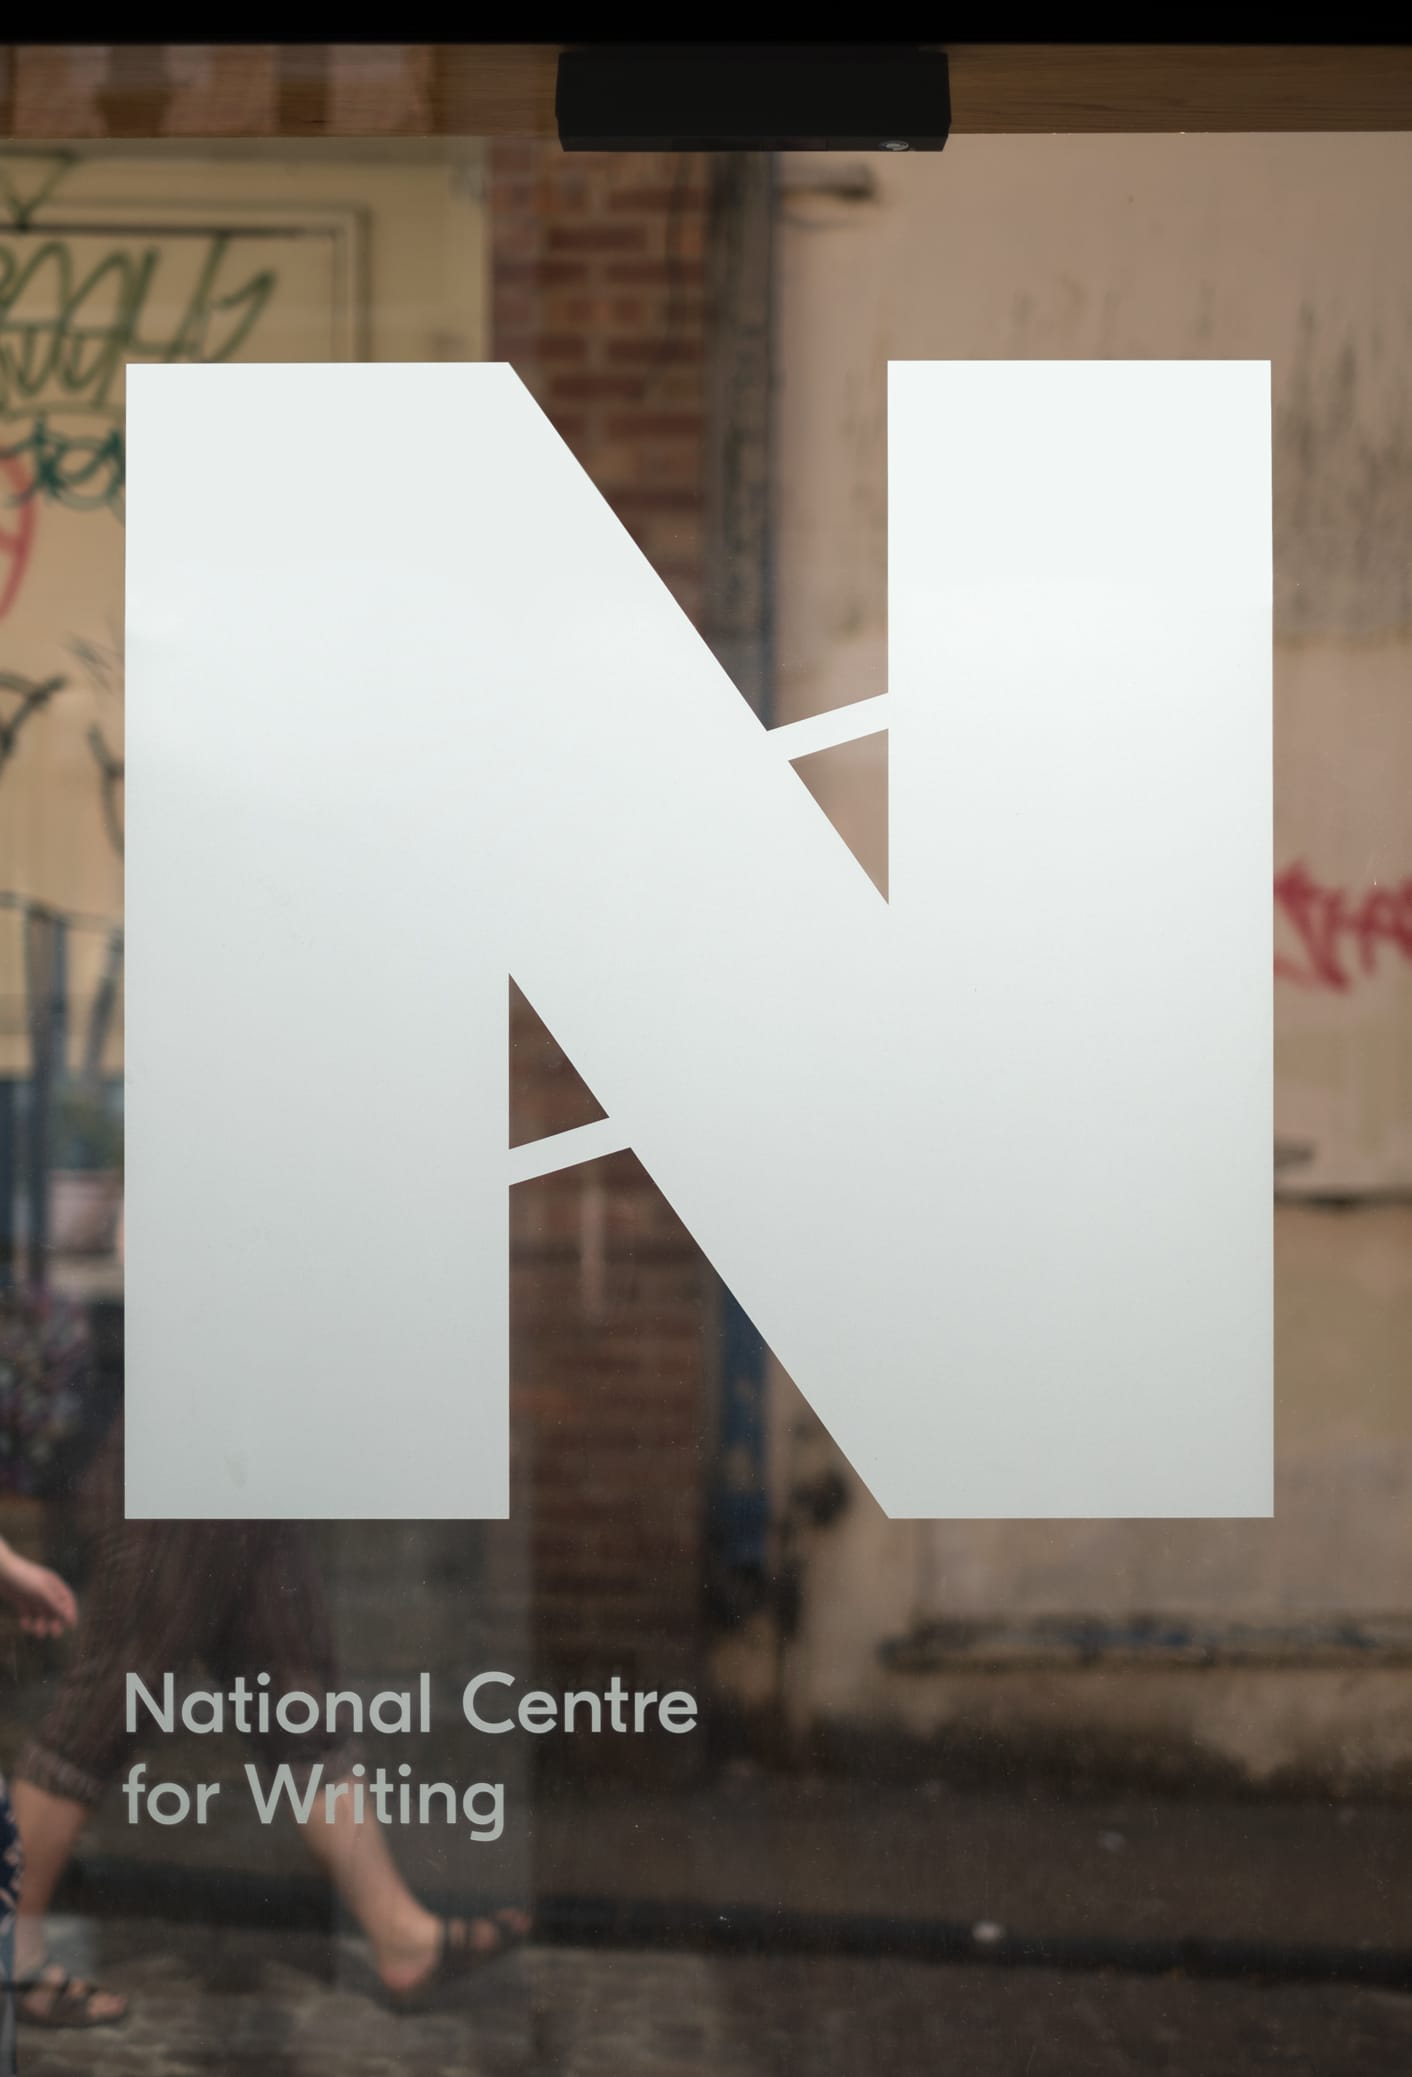 National Centre for Writing glass entrance door